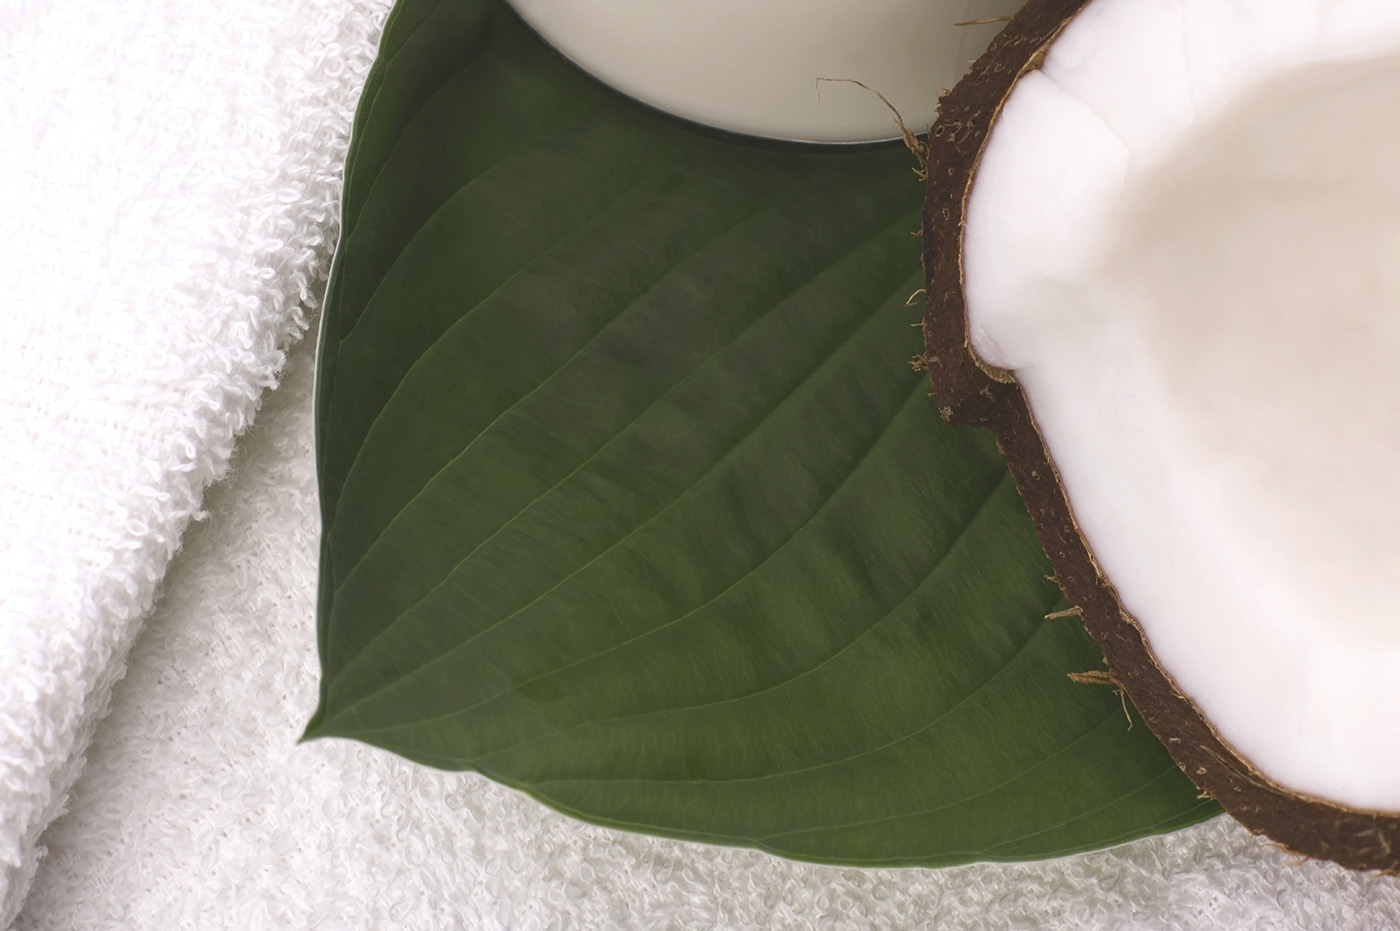 Open coconut shell 50159